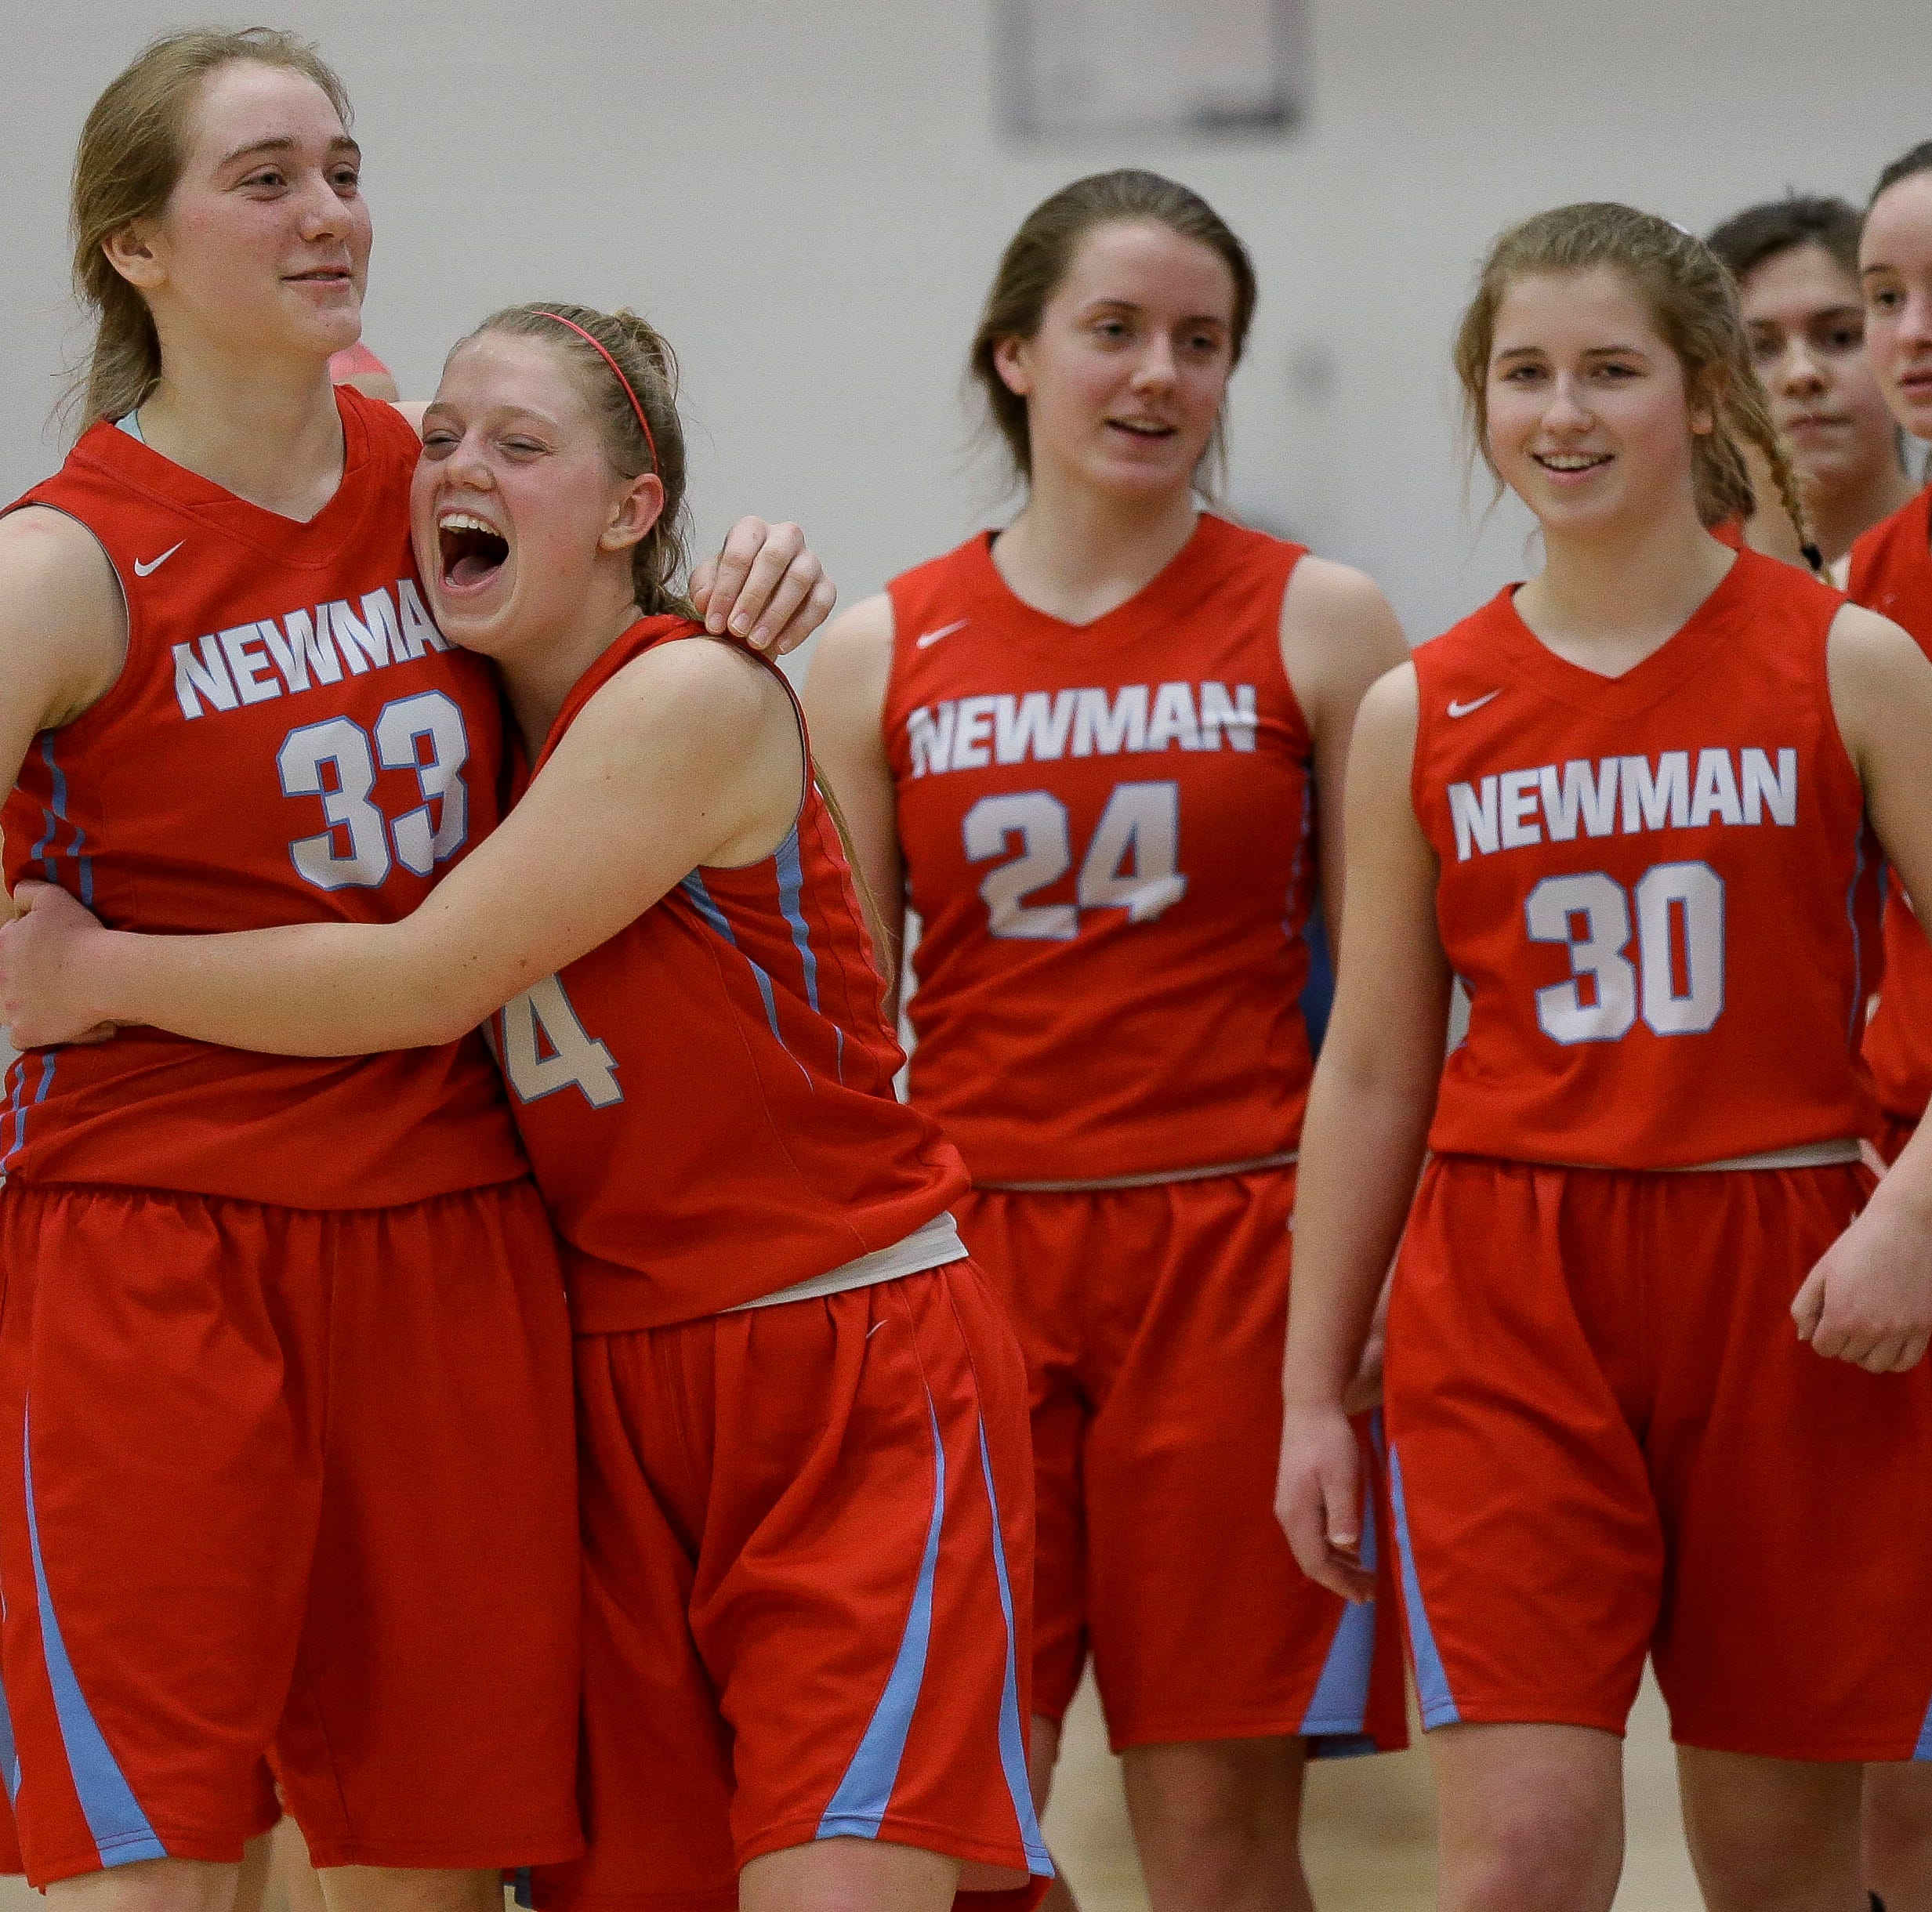 WIAA girls basketball: Newman Catholic returns to state seeking title